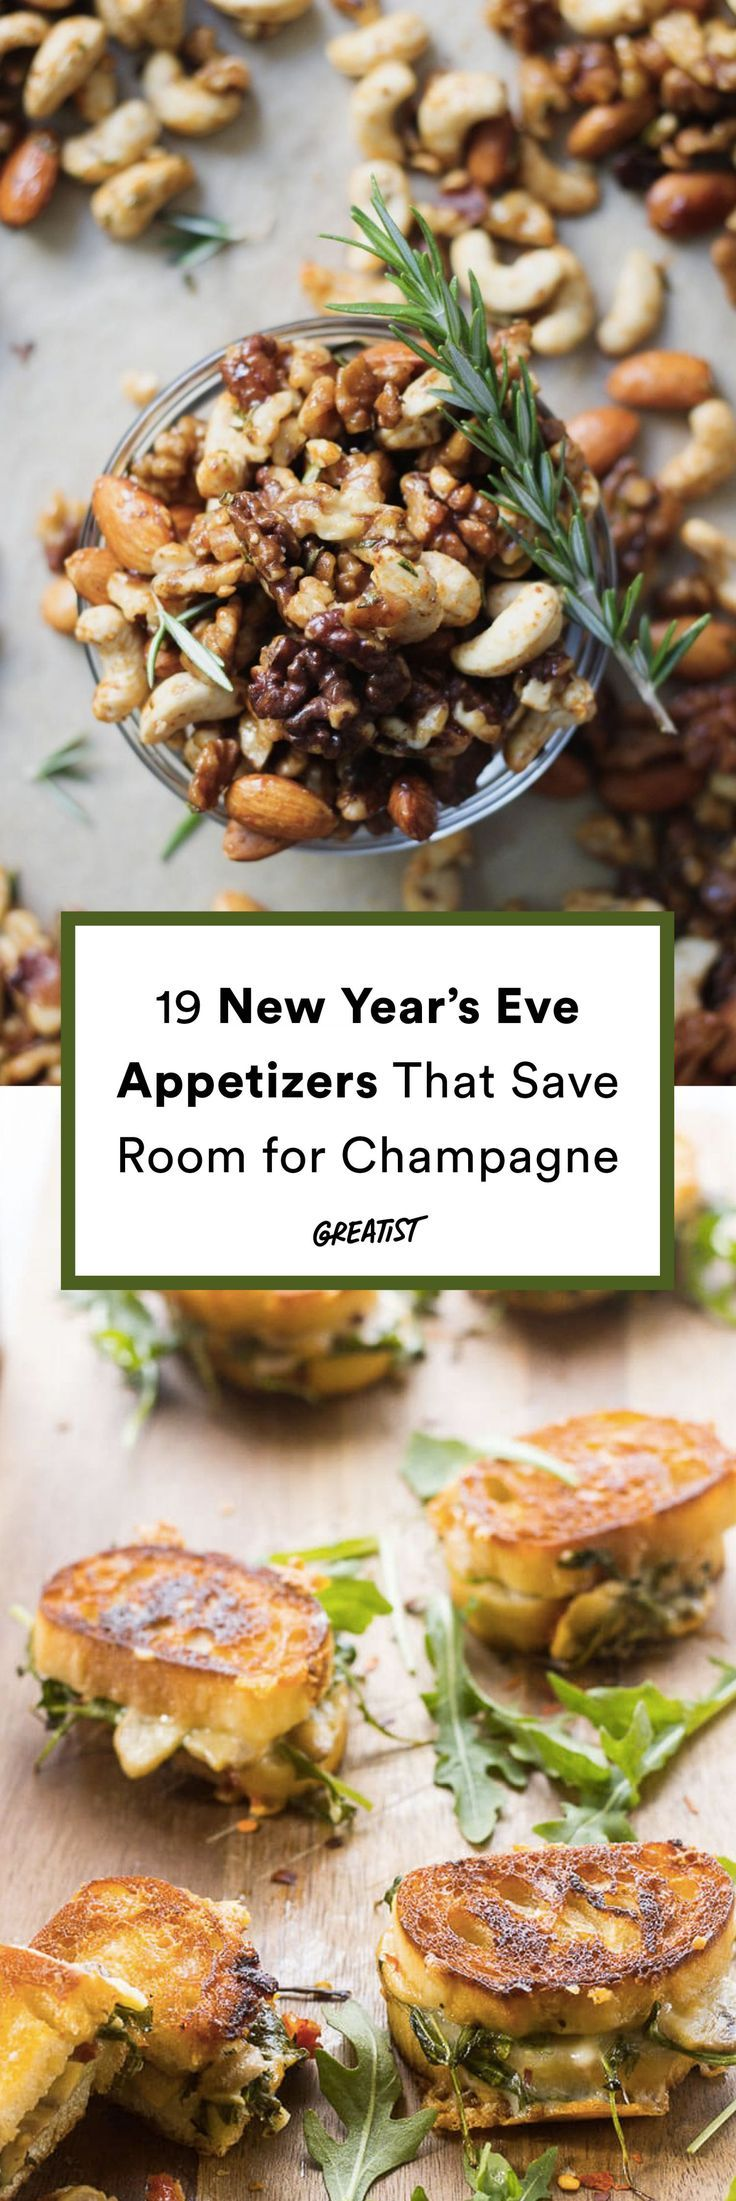 Blame the bloat on the bubbly, not the bites. #greatist https://greatist.com/eat/new-years-eve-appetizer-recipes